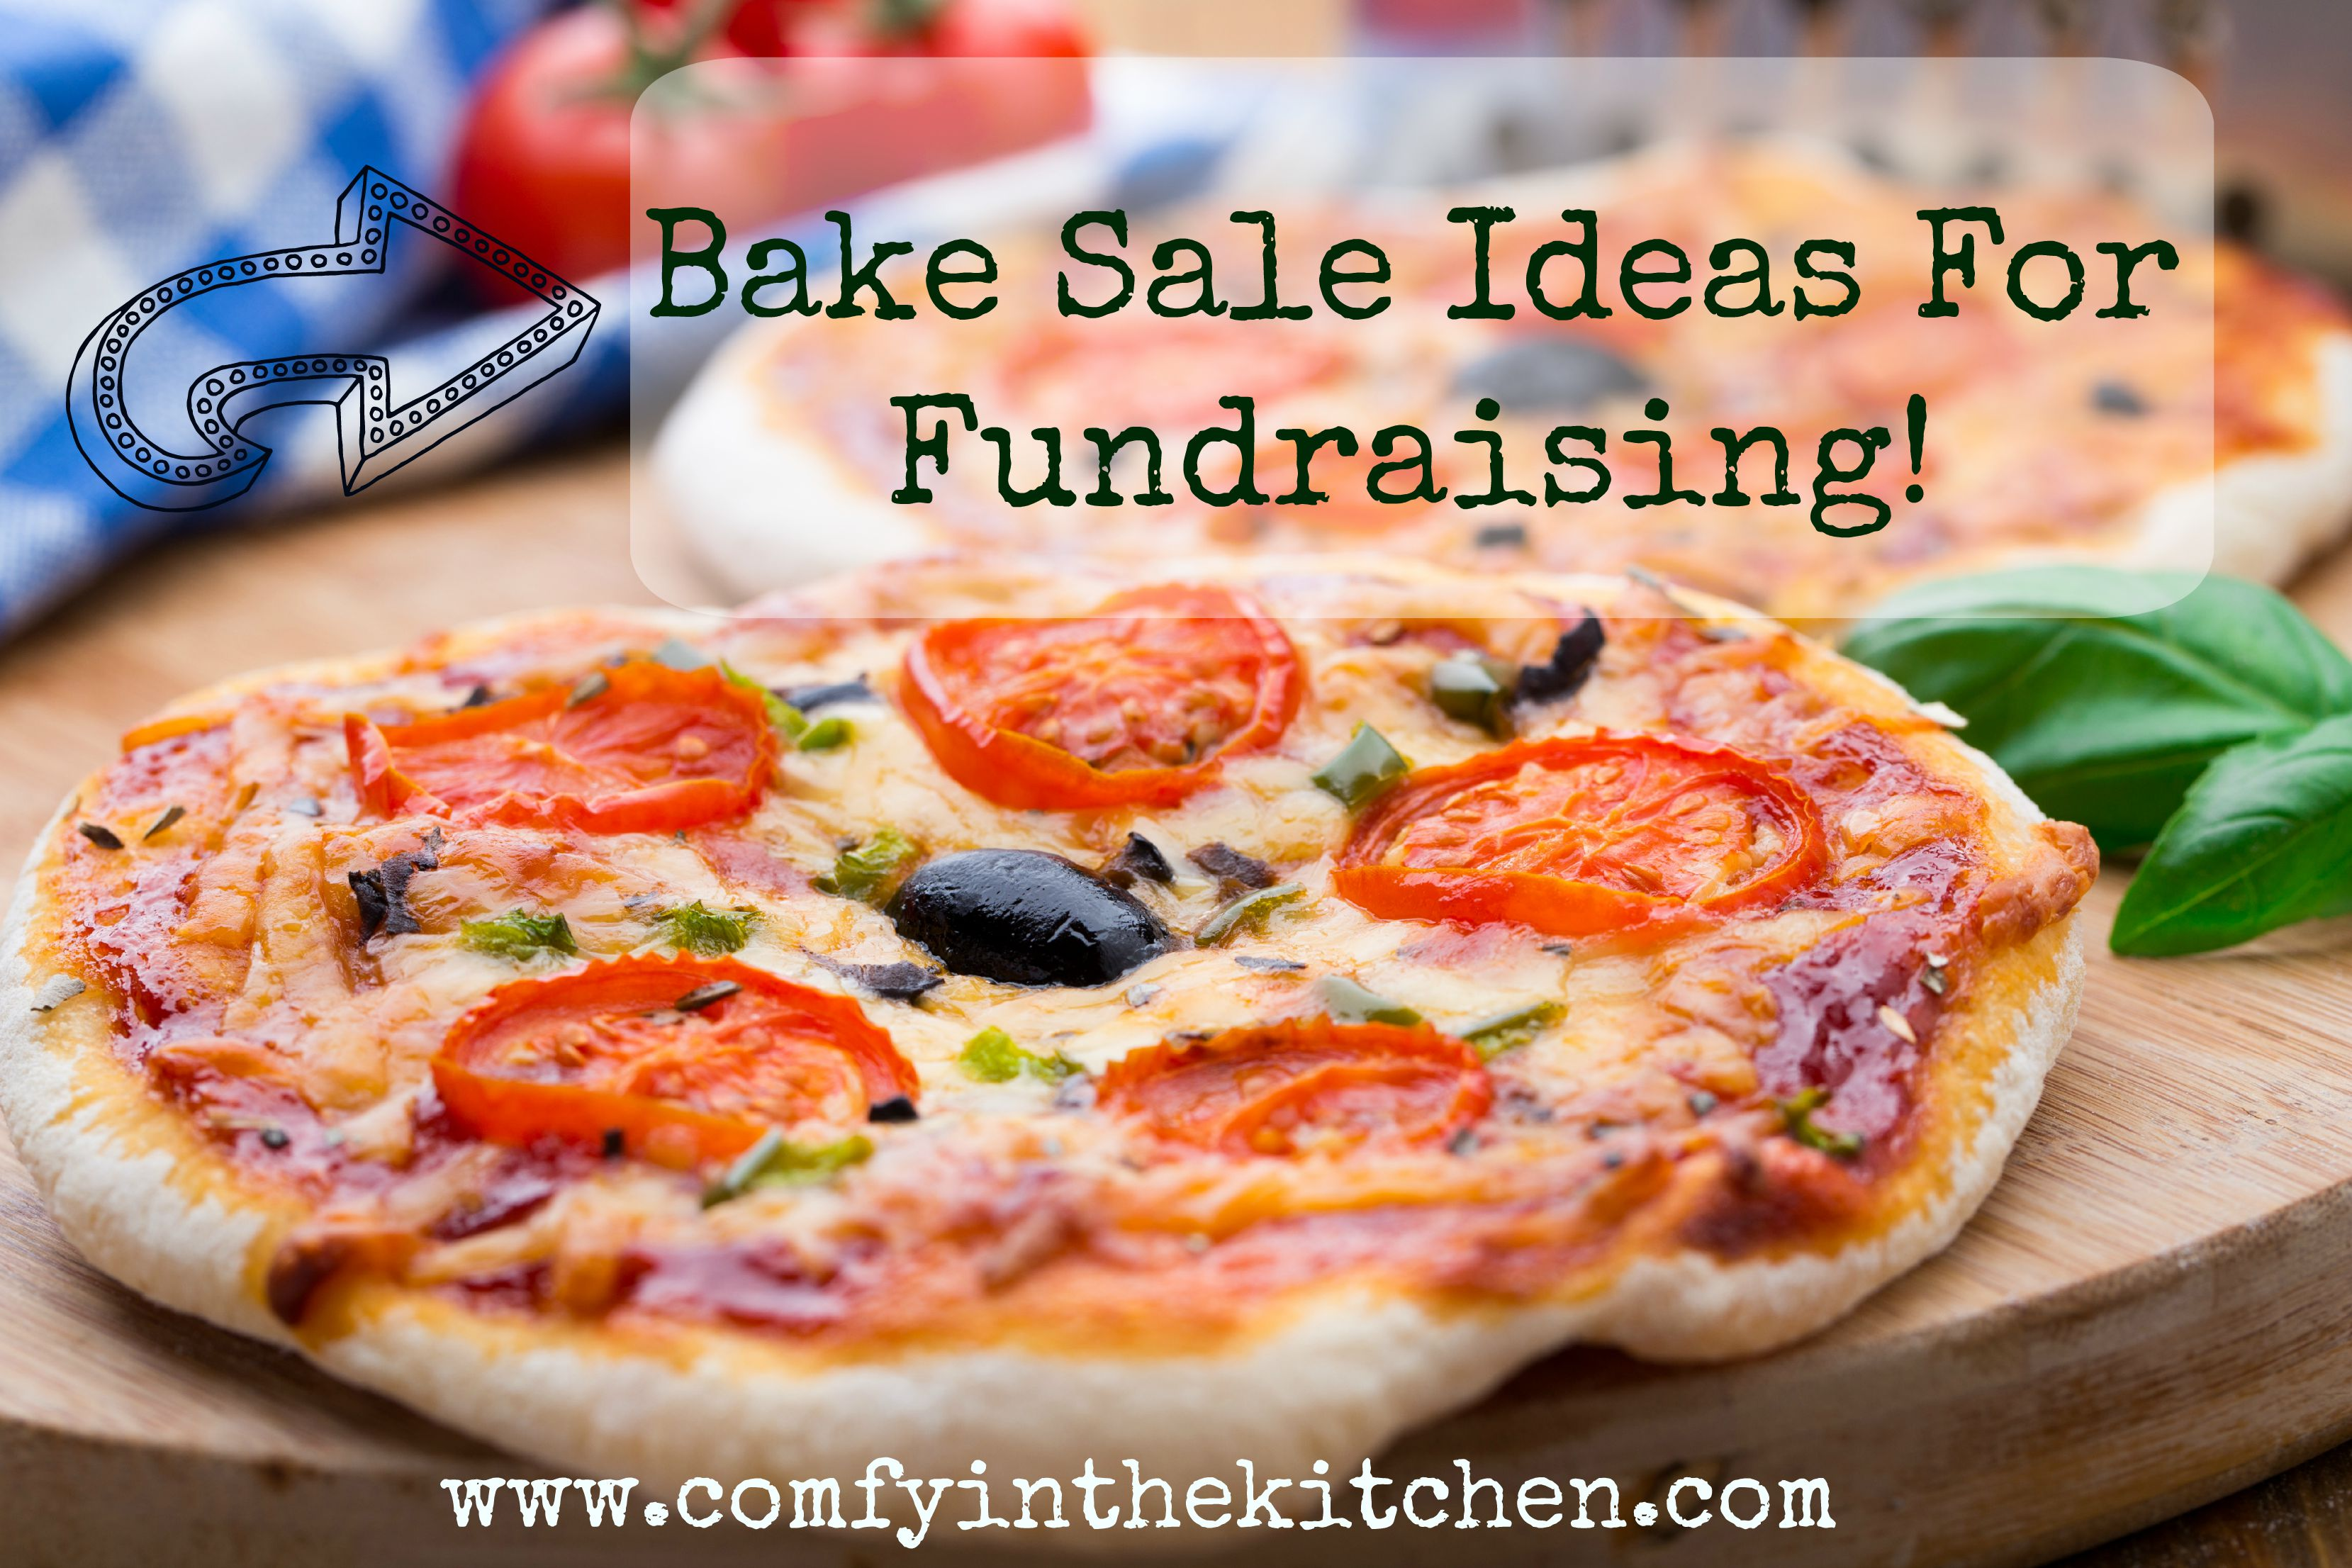 bake ideas for fundraisers comfy in the kitchen vegetarian mini pizza cherry tomatoes paprika and olives